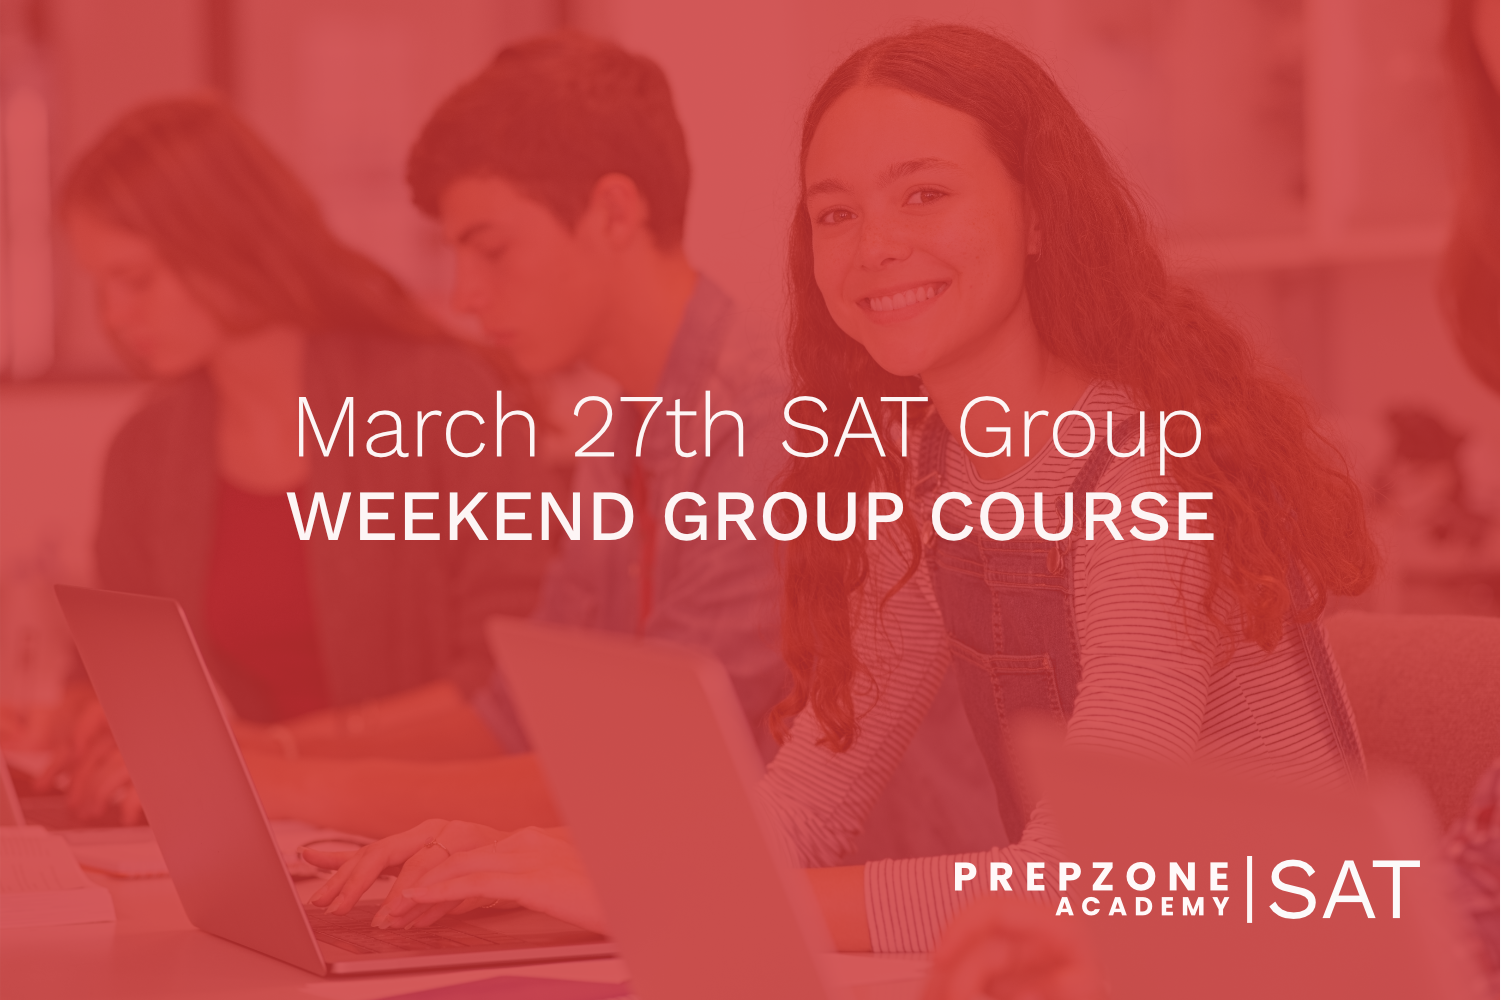 SAT Weekend Group Course Schedule – March 27th, 2021